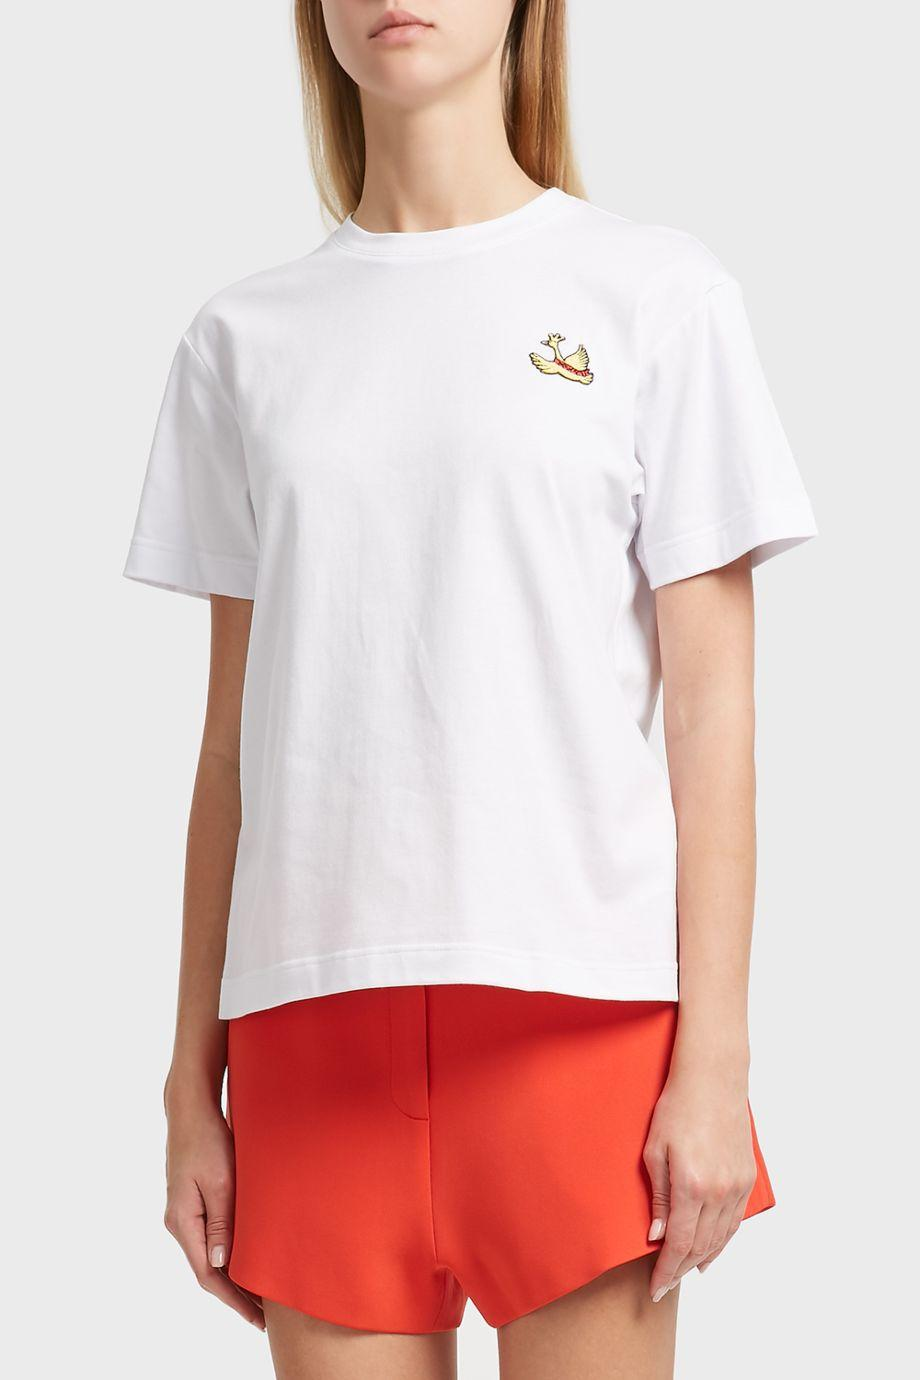 Macgraw Sain Embellished-Swan Cotton T-Shirt